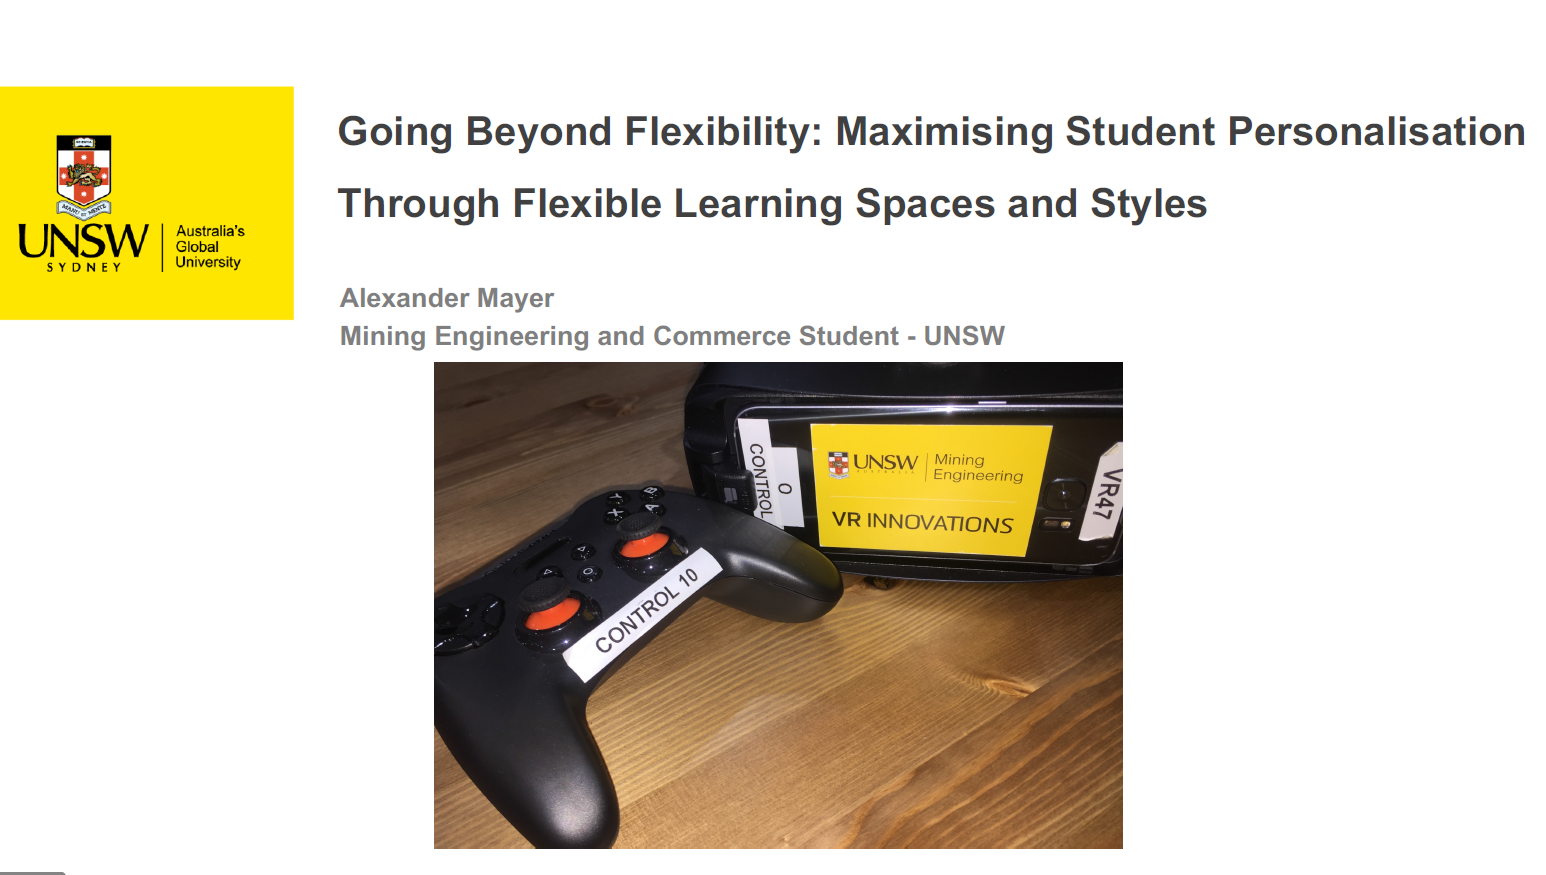 Going Beyond Flexibility: Maximising Student Personalisation through Flexible Learning Styles and Spaces